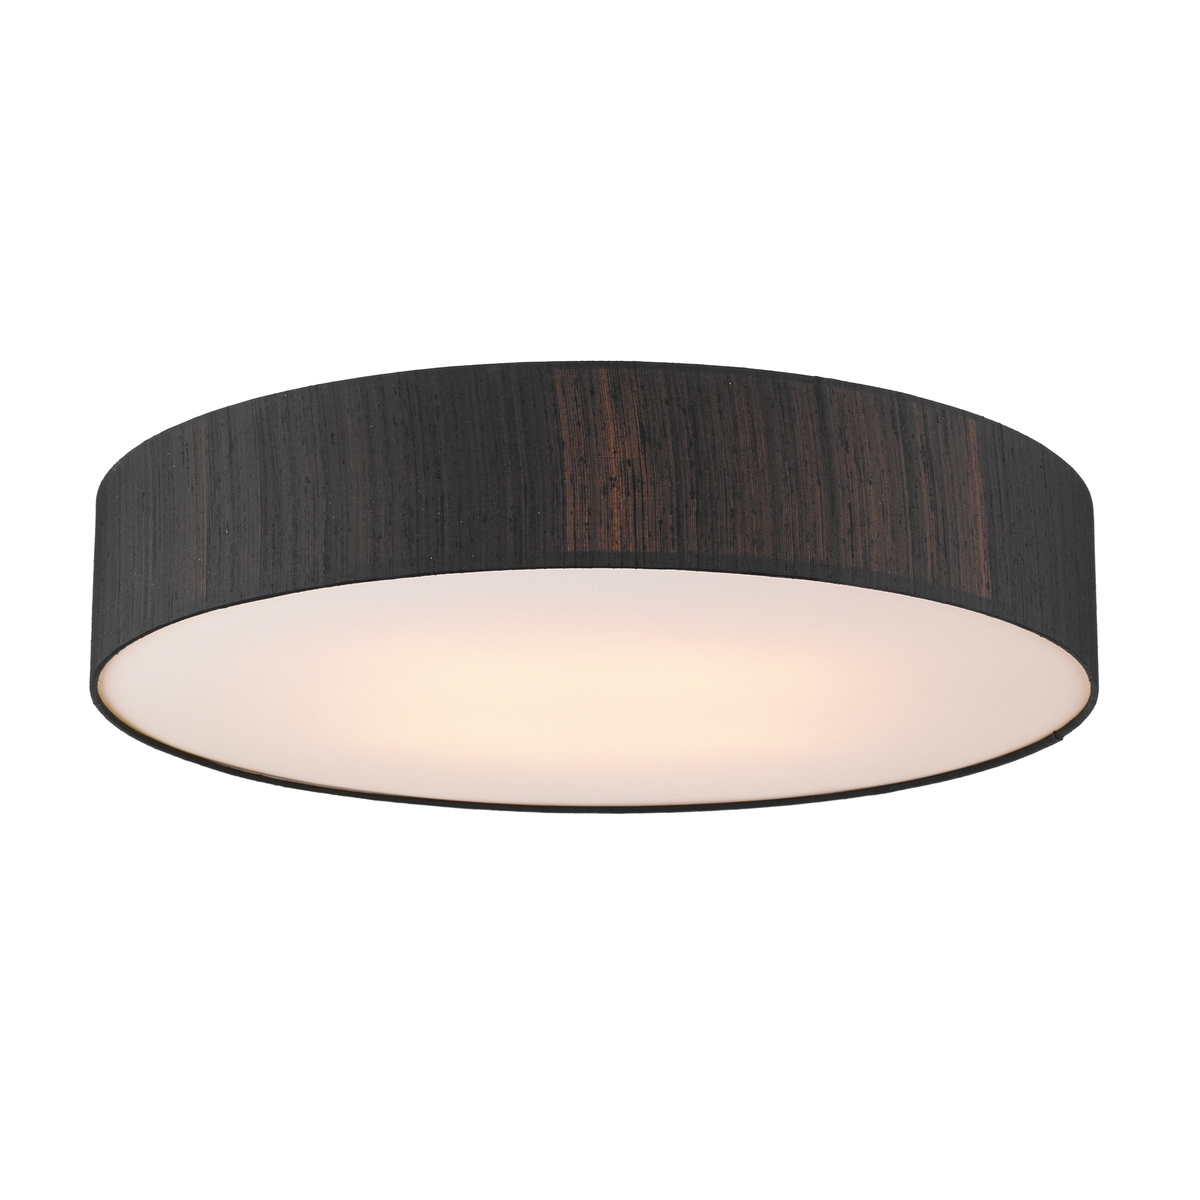 Designer Ceiling Lamp Shades Uk